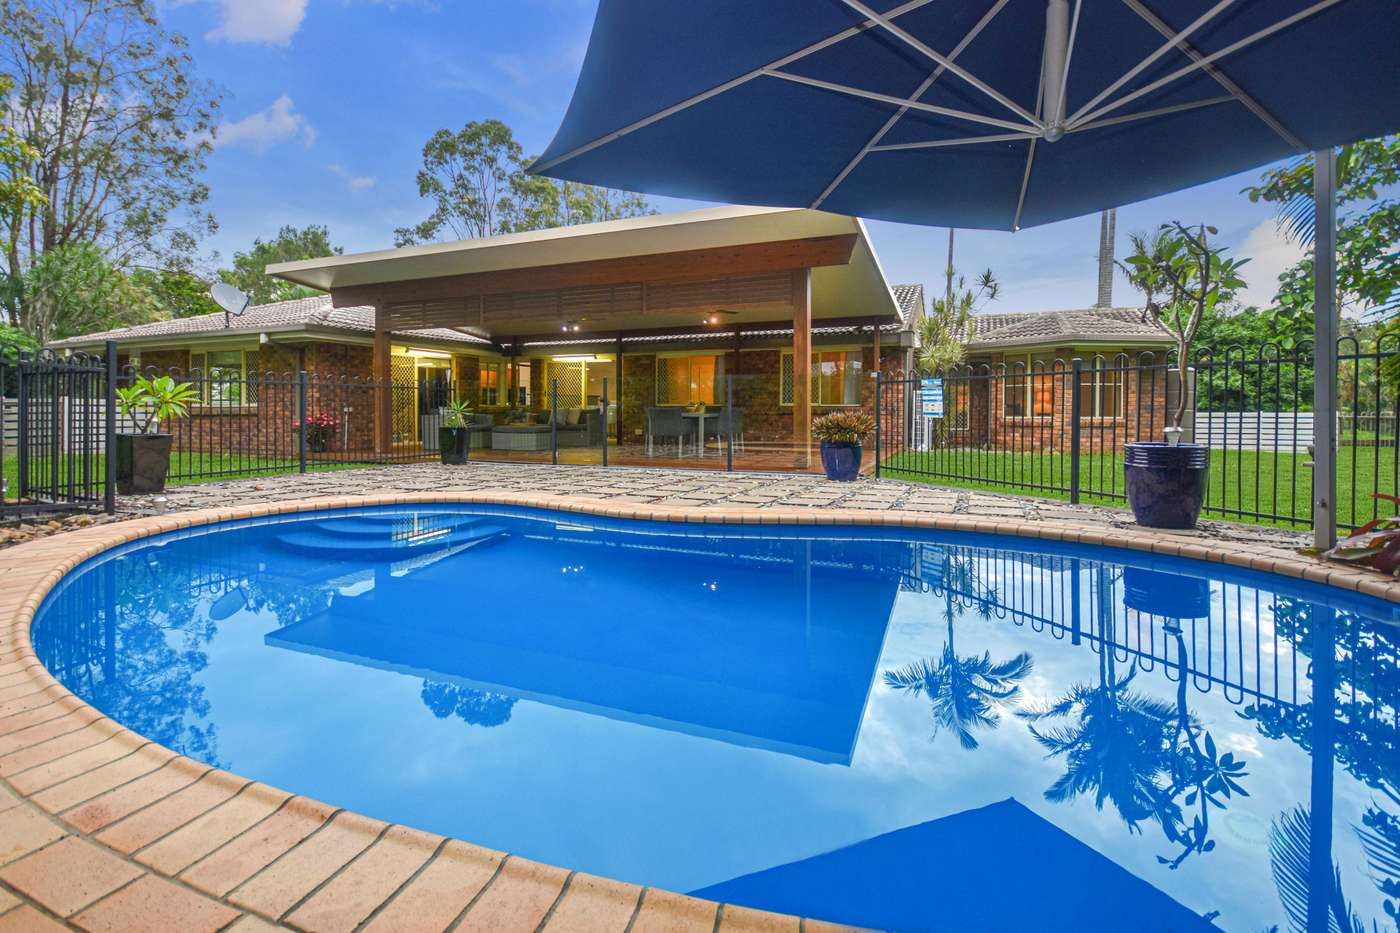 Main view of Homely house listing, 33 Morrison Street, Narangba, QLD 4504